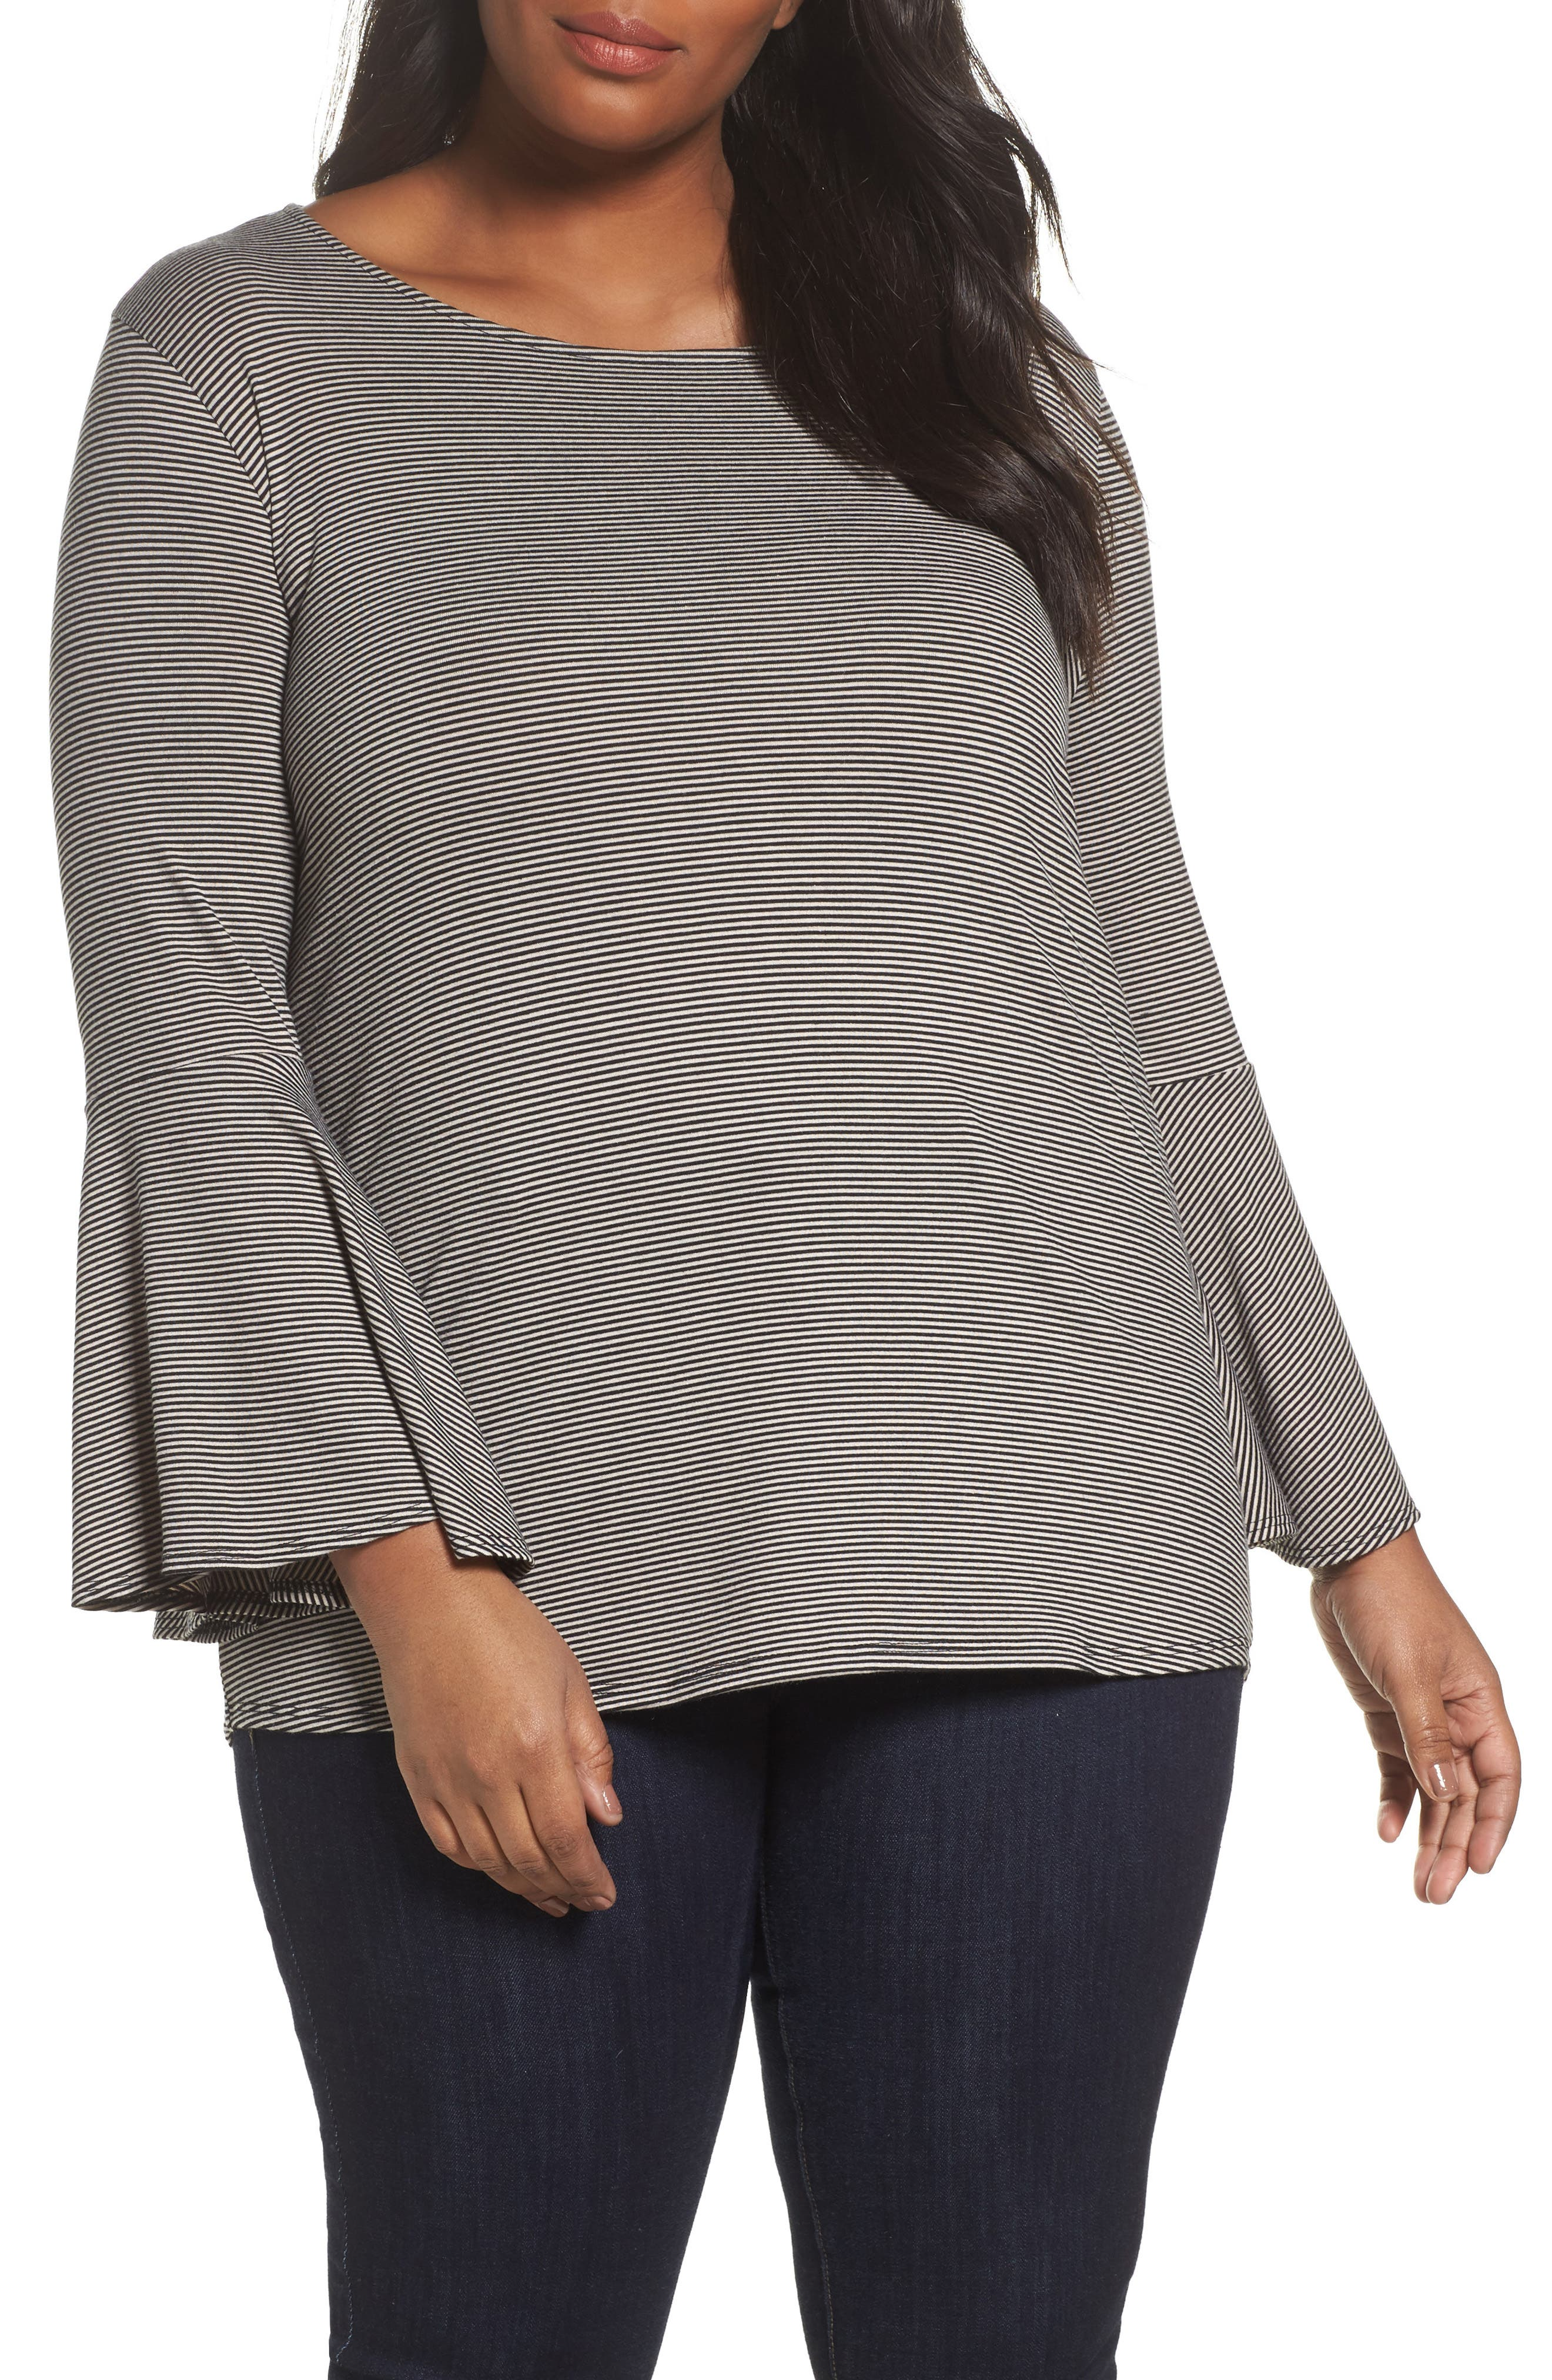 Bell Sleeve Top,                         Main,                         color, Charcoal Heather- Black Stripe